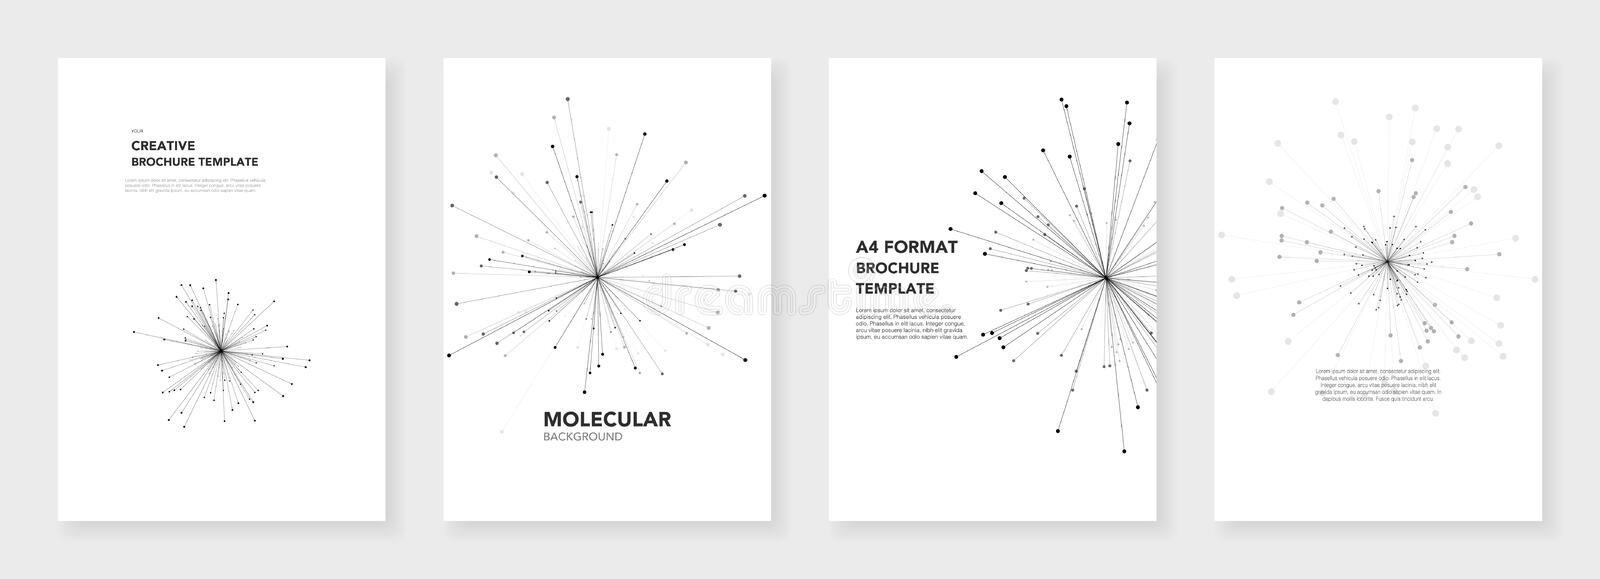 Minimal Brochure Templates Stock Vector Illustration Of